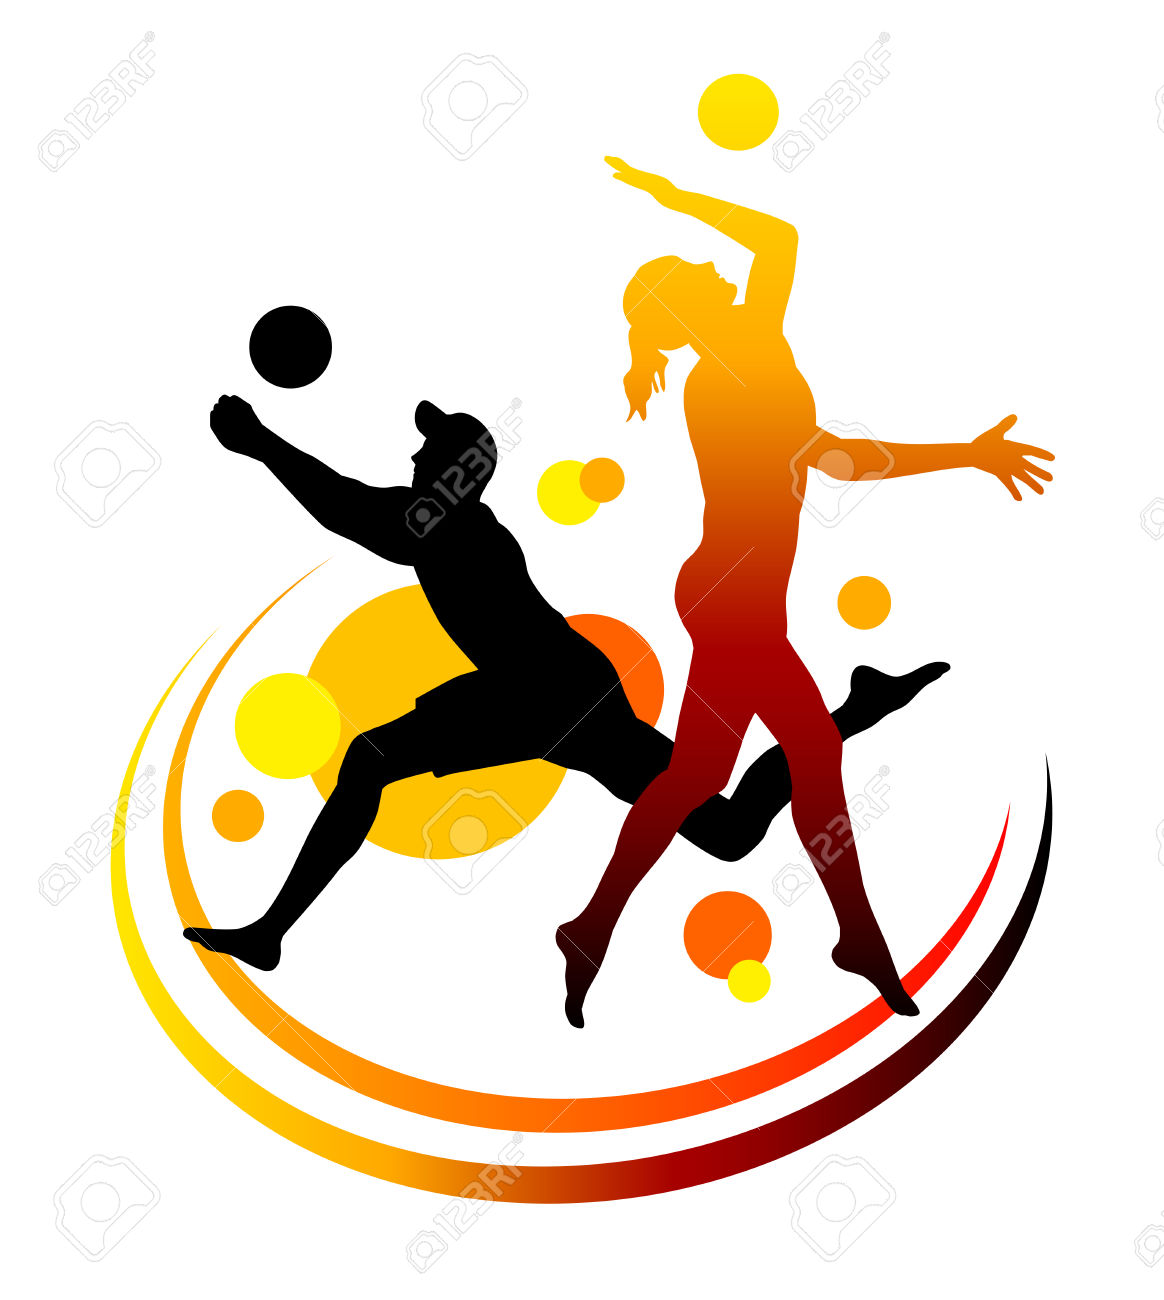 vollleyball how to play the game essay Well i have seen someone kick the volleyball during a gameso yes you may reply hello, i am 4-foot-5 (140cm) and i want to play high school volleyball.